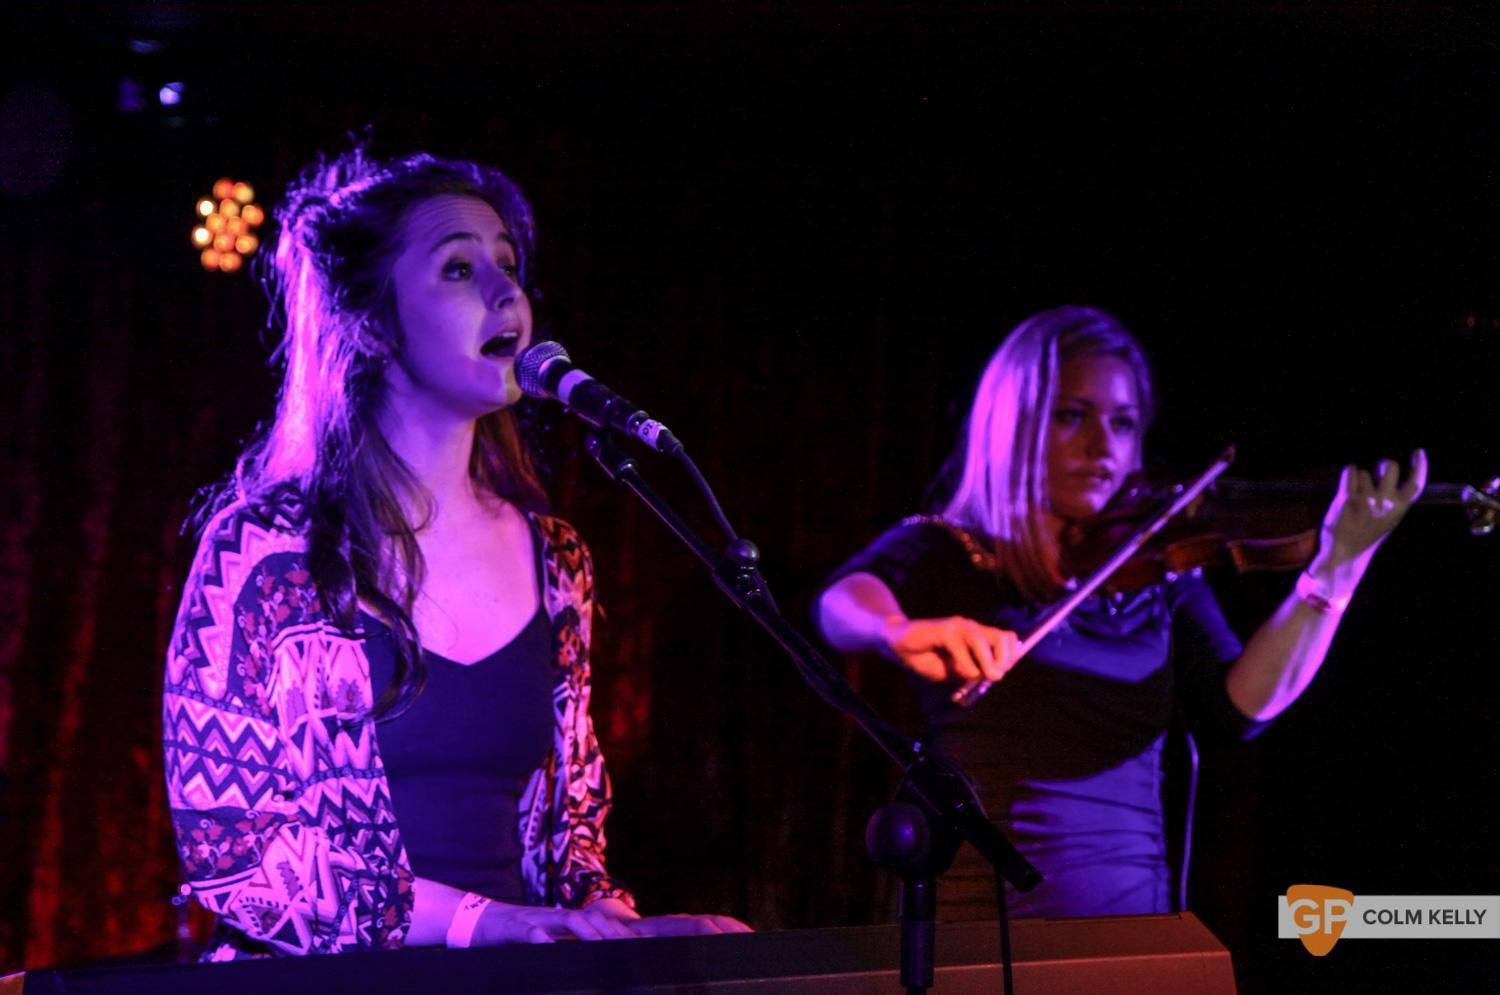 Rachael Lavelle at The Academy by Colm Kelly